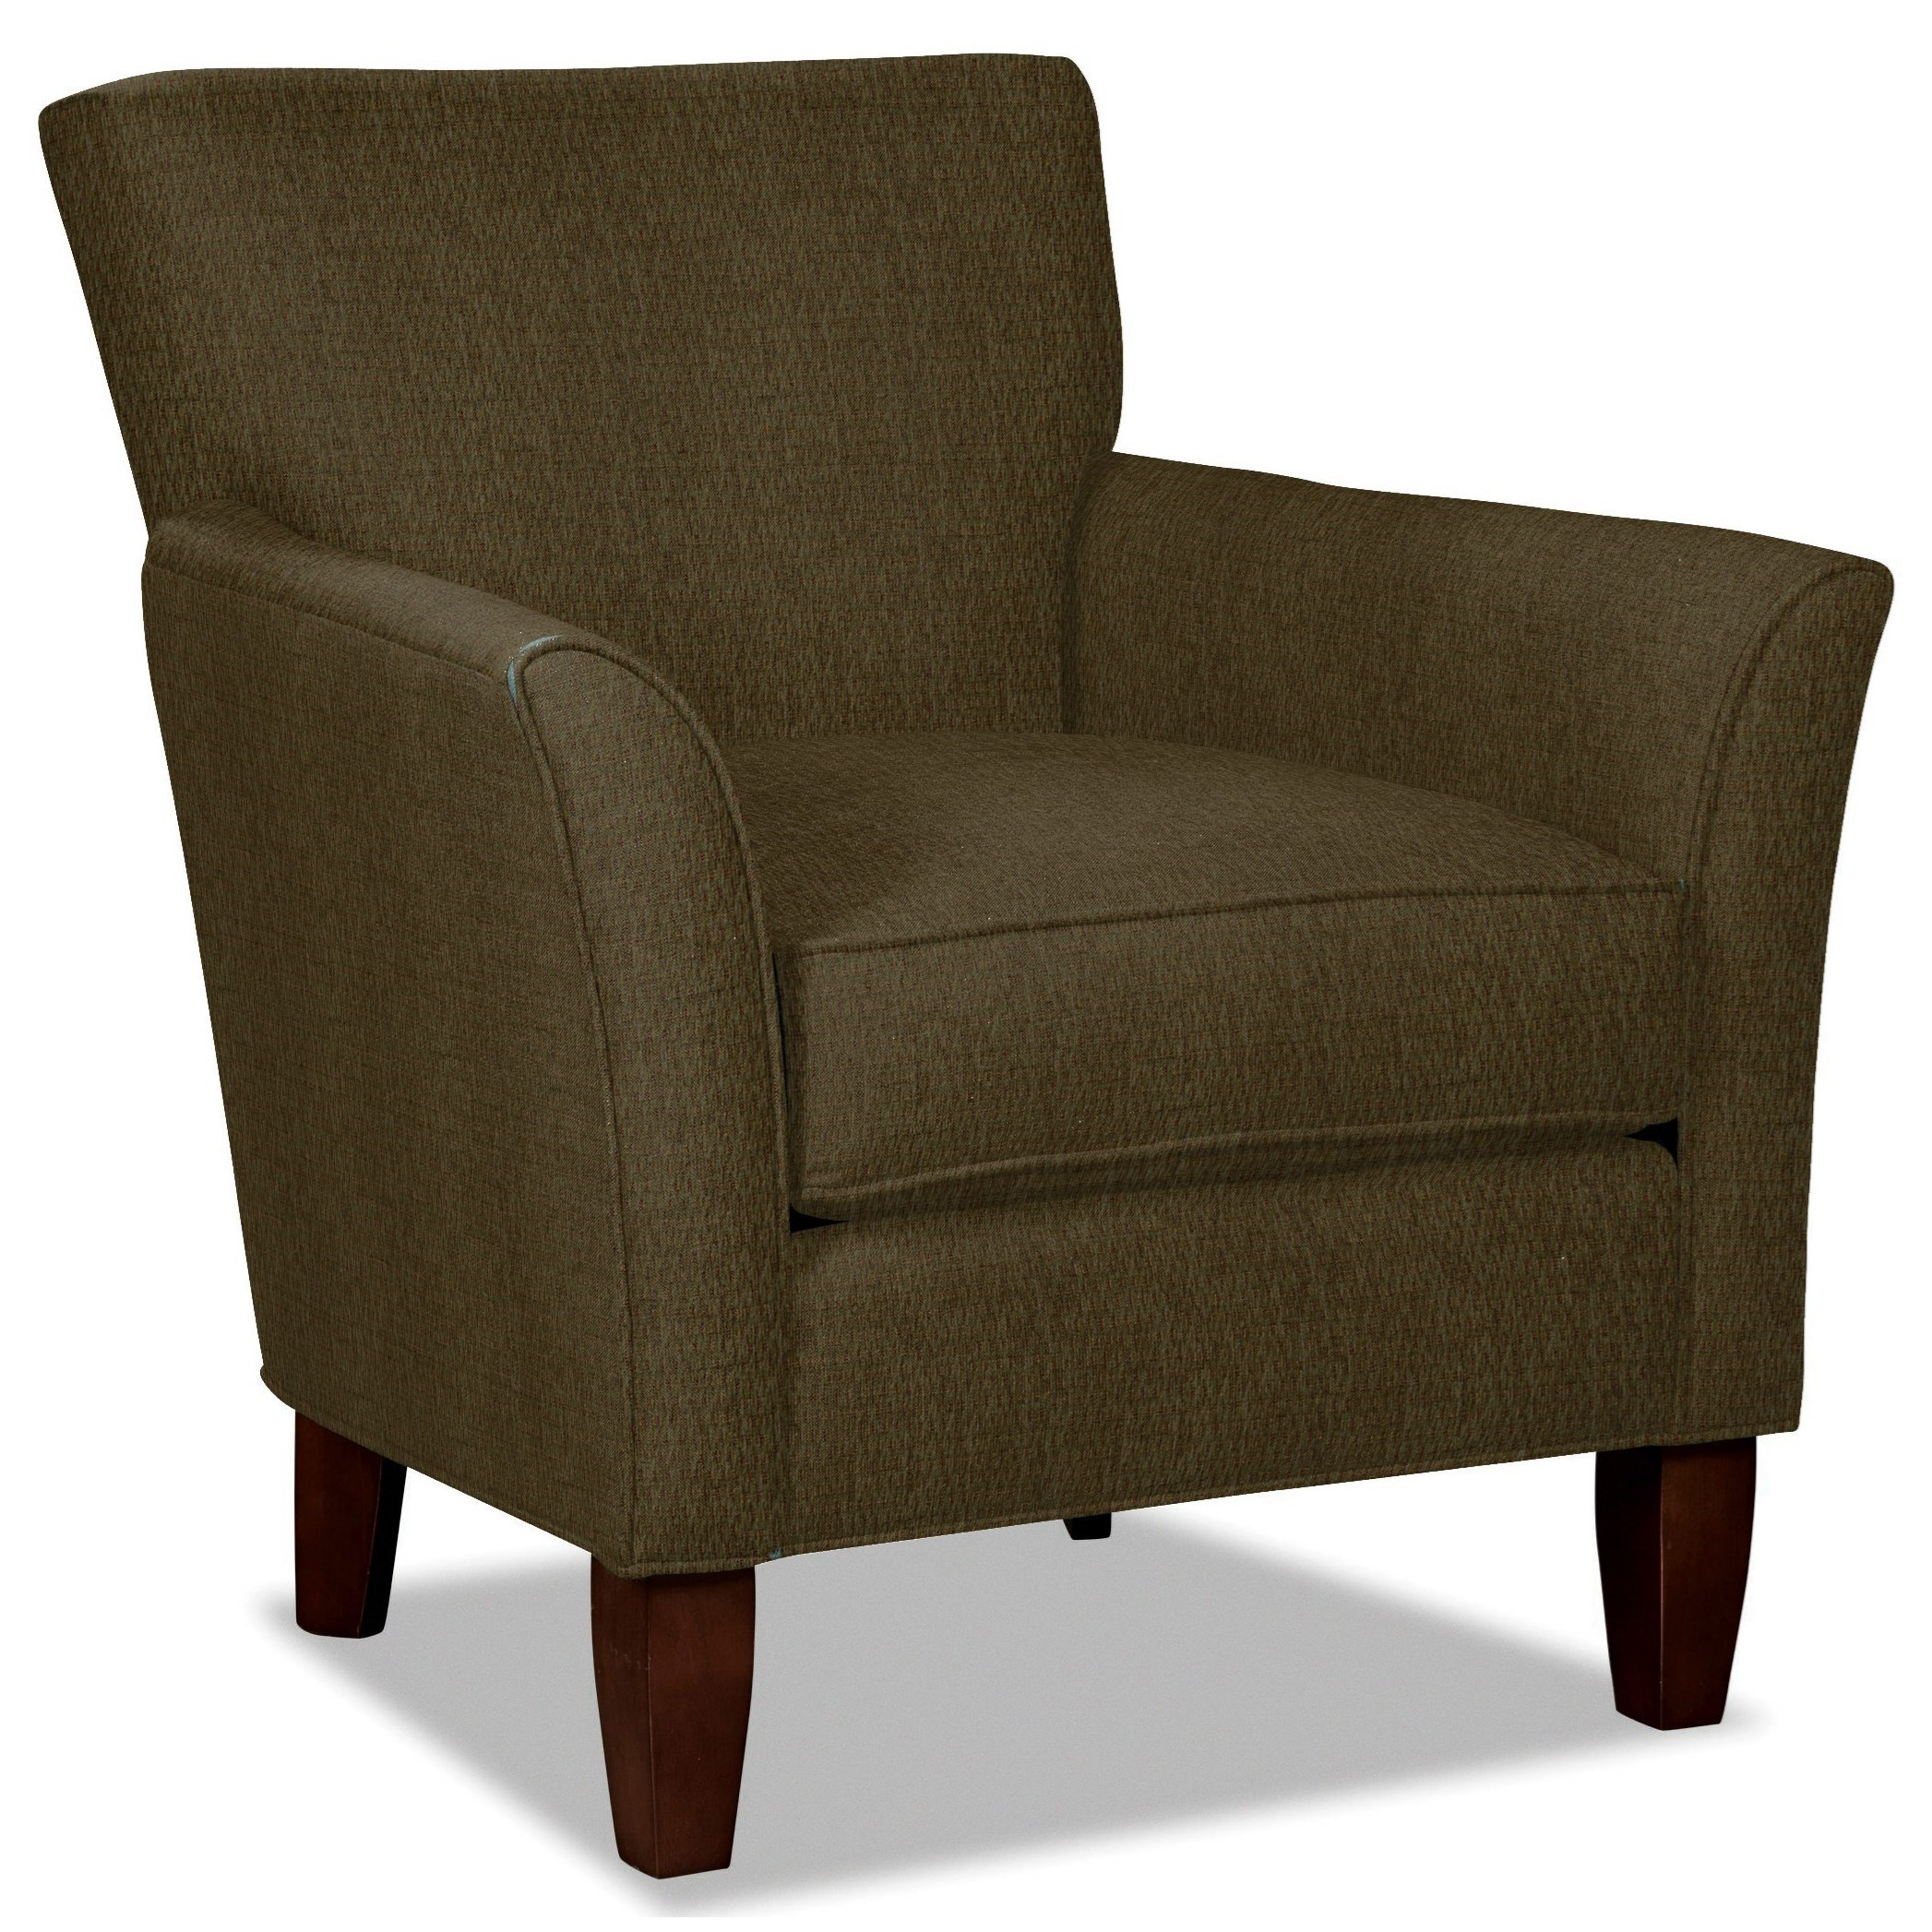 Craftmaster 060110 Accent Chair - Item Number: 060110-HOKEY-16